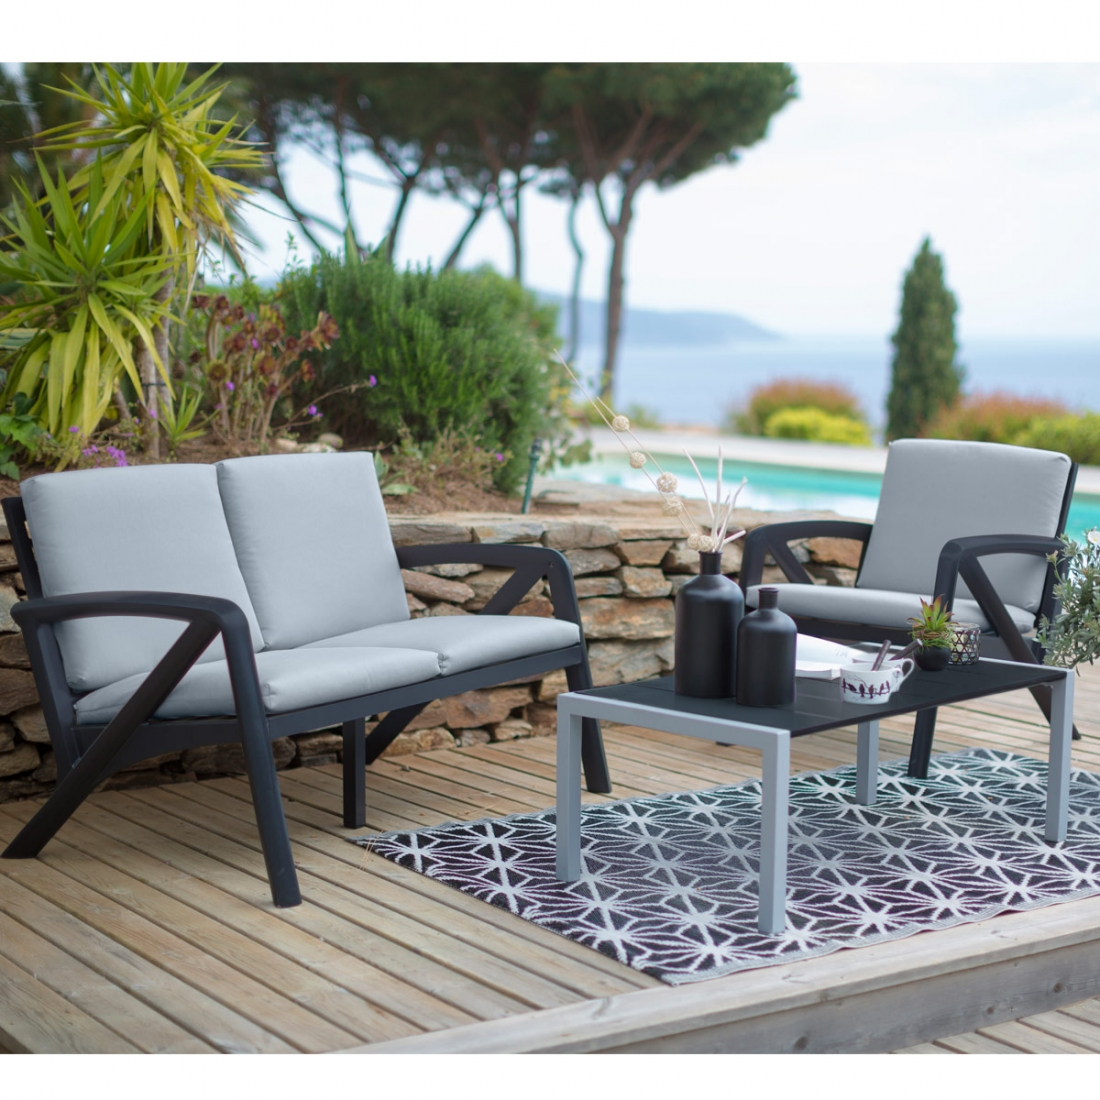 Salon de jardin lounge sunday barcelone design grosfillex for Mini salon de jardin